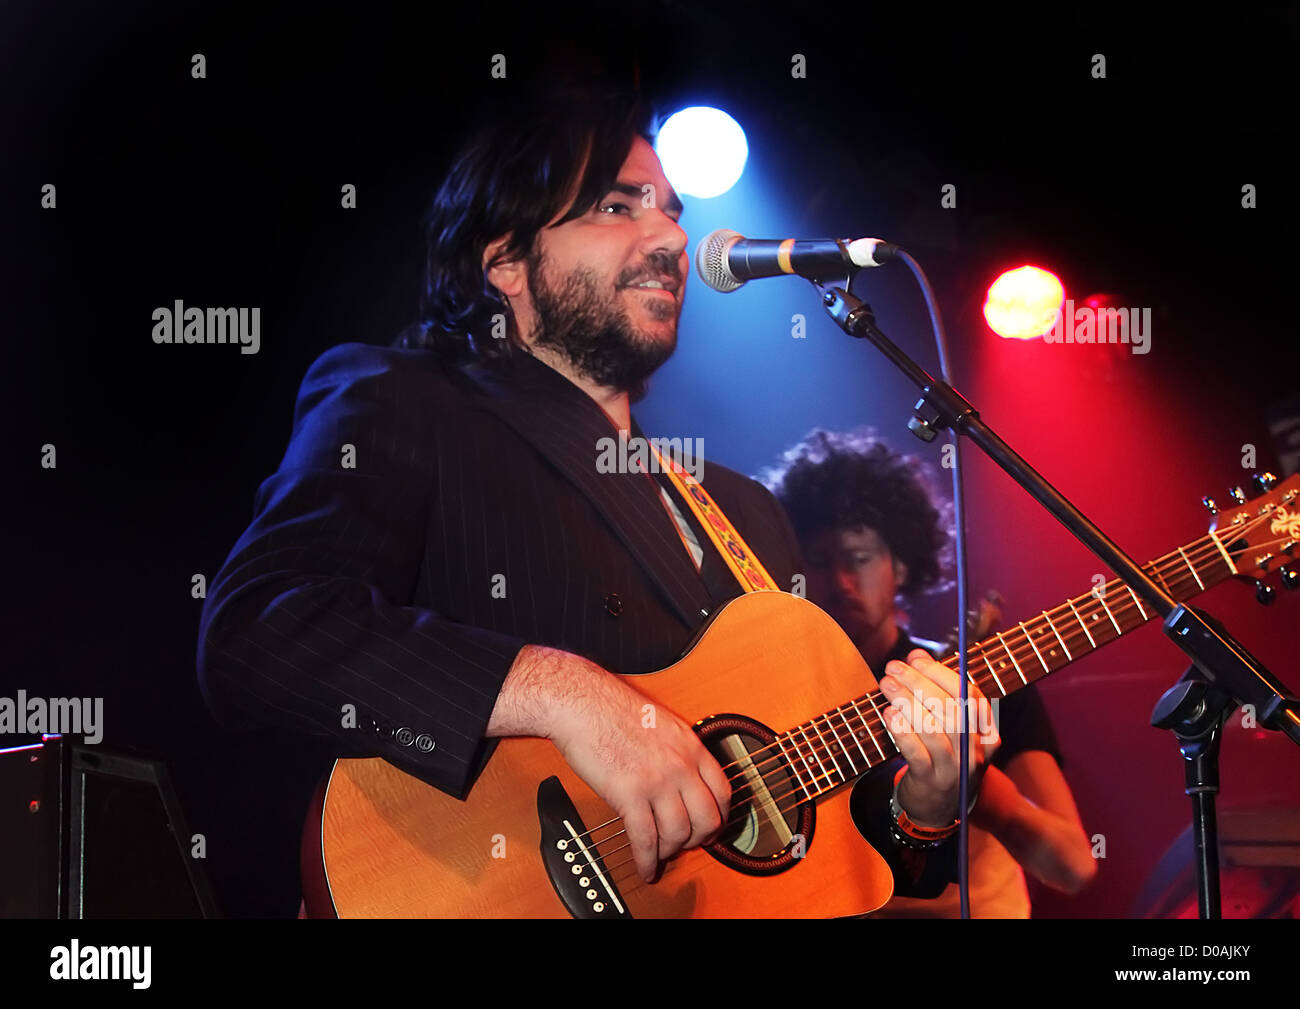 Matt Berry of Mighty Boosh and IT Crowd fame performing at Liverpool Masque Liverpool, England - 23.11.10 - Stock Image